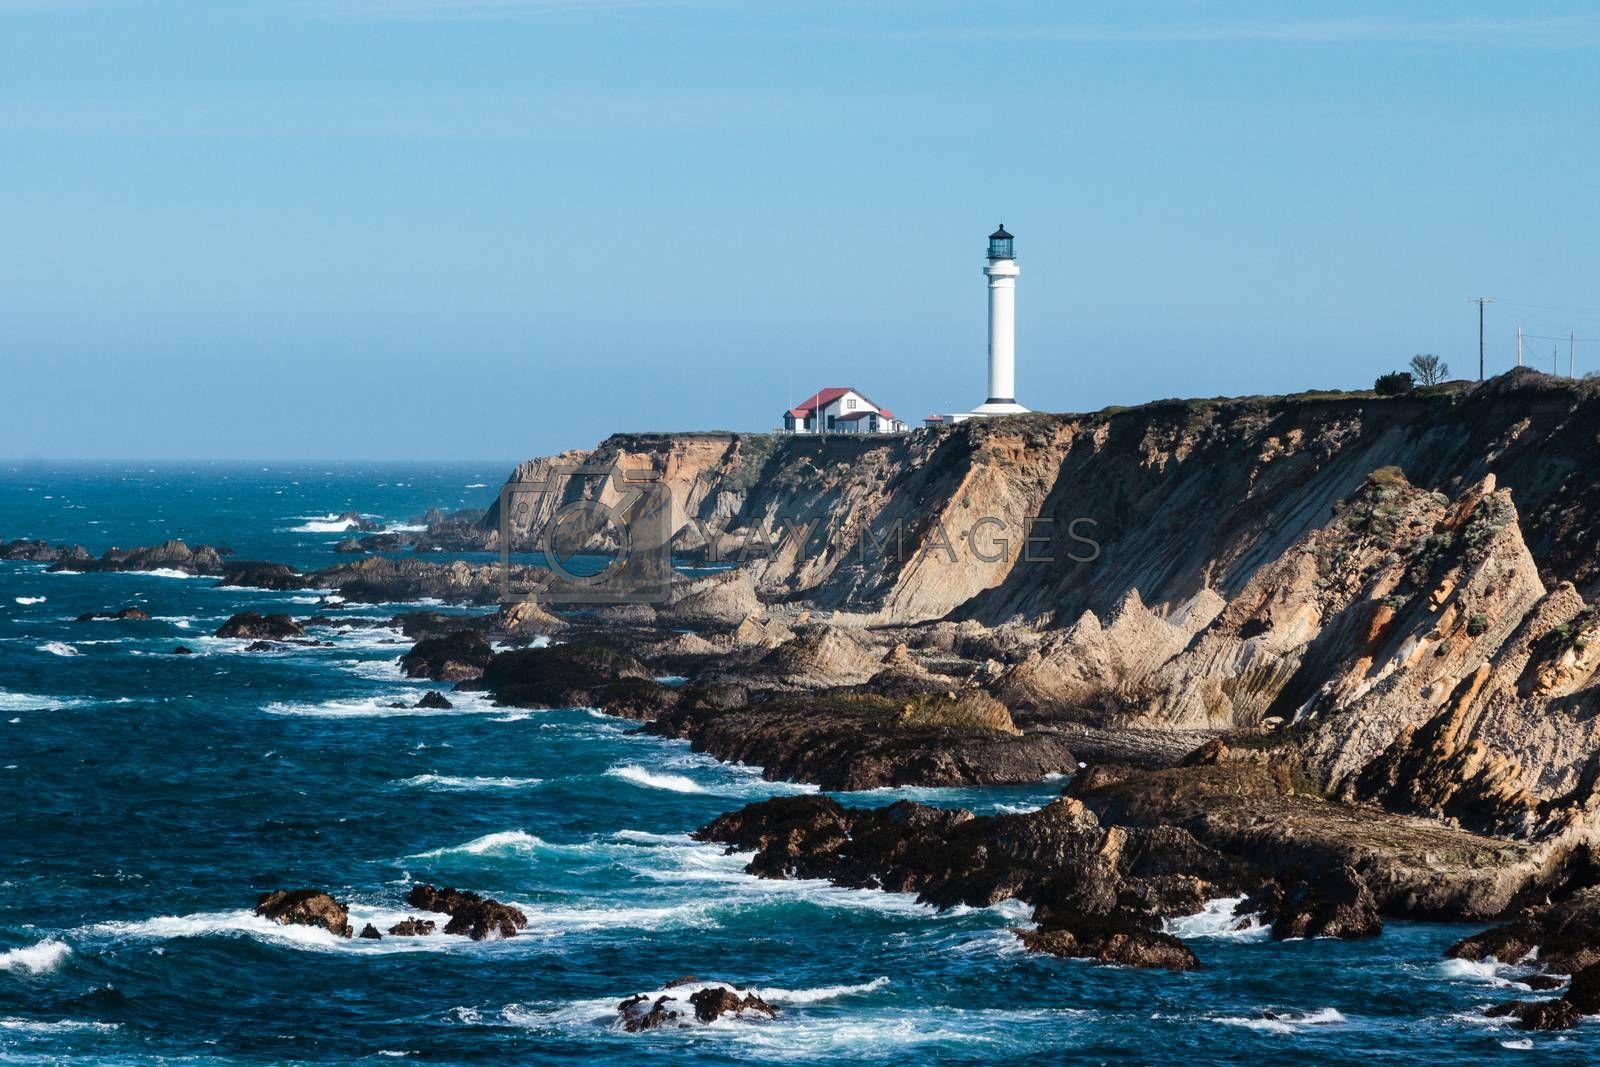 The lighthouse at Point Arena in Northern California.